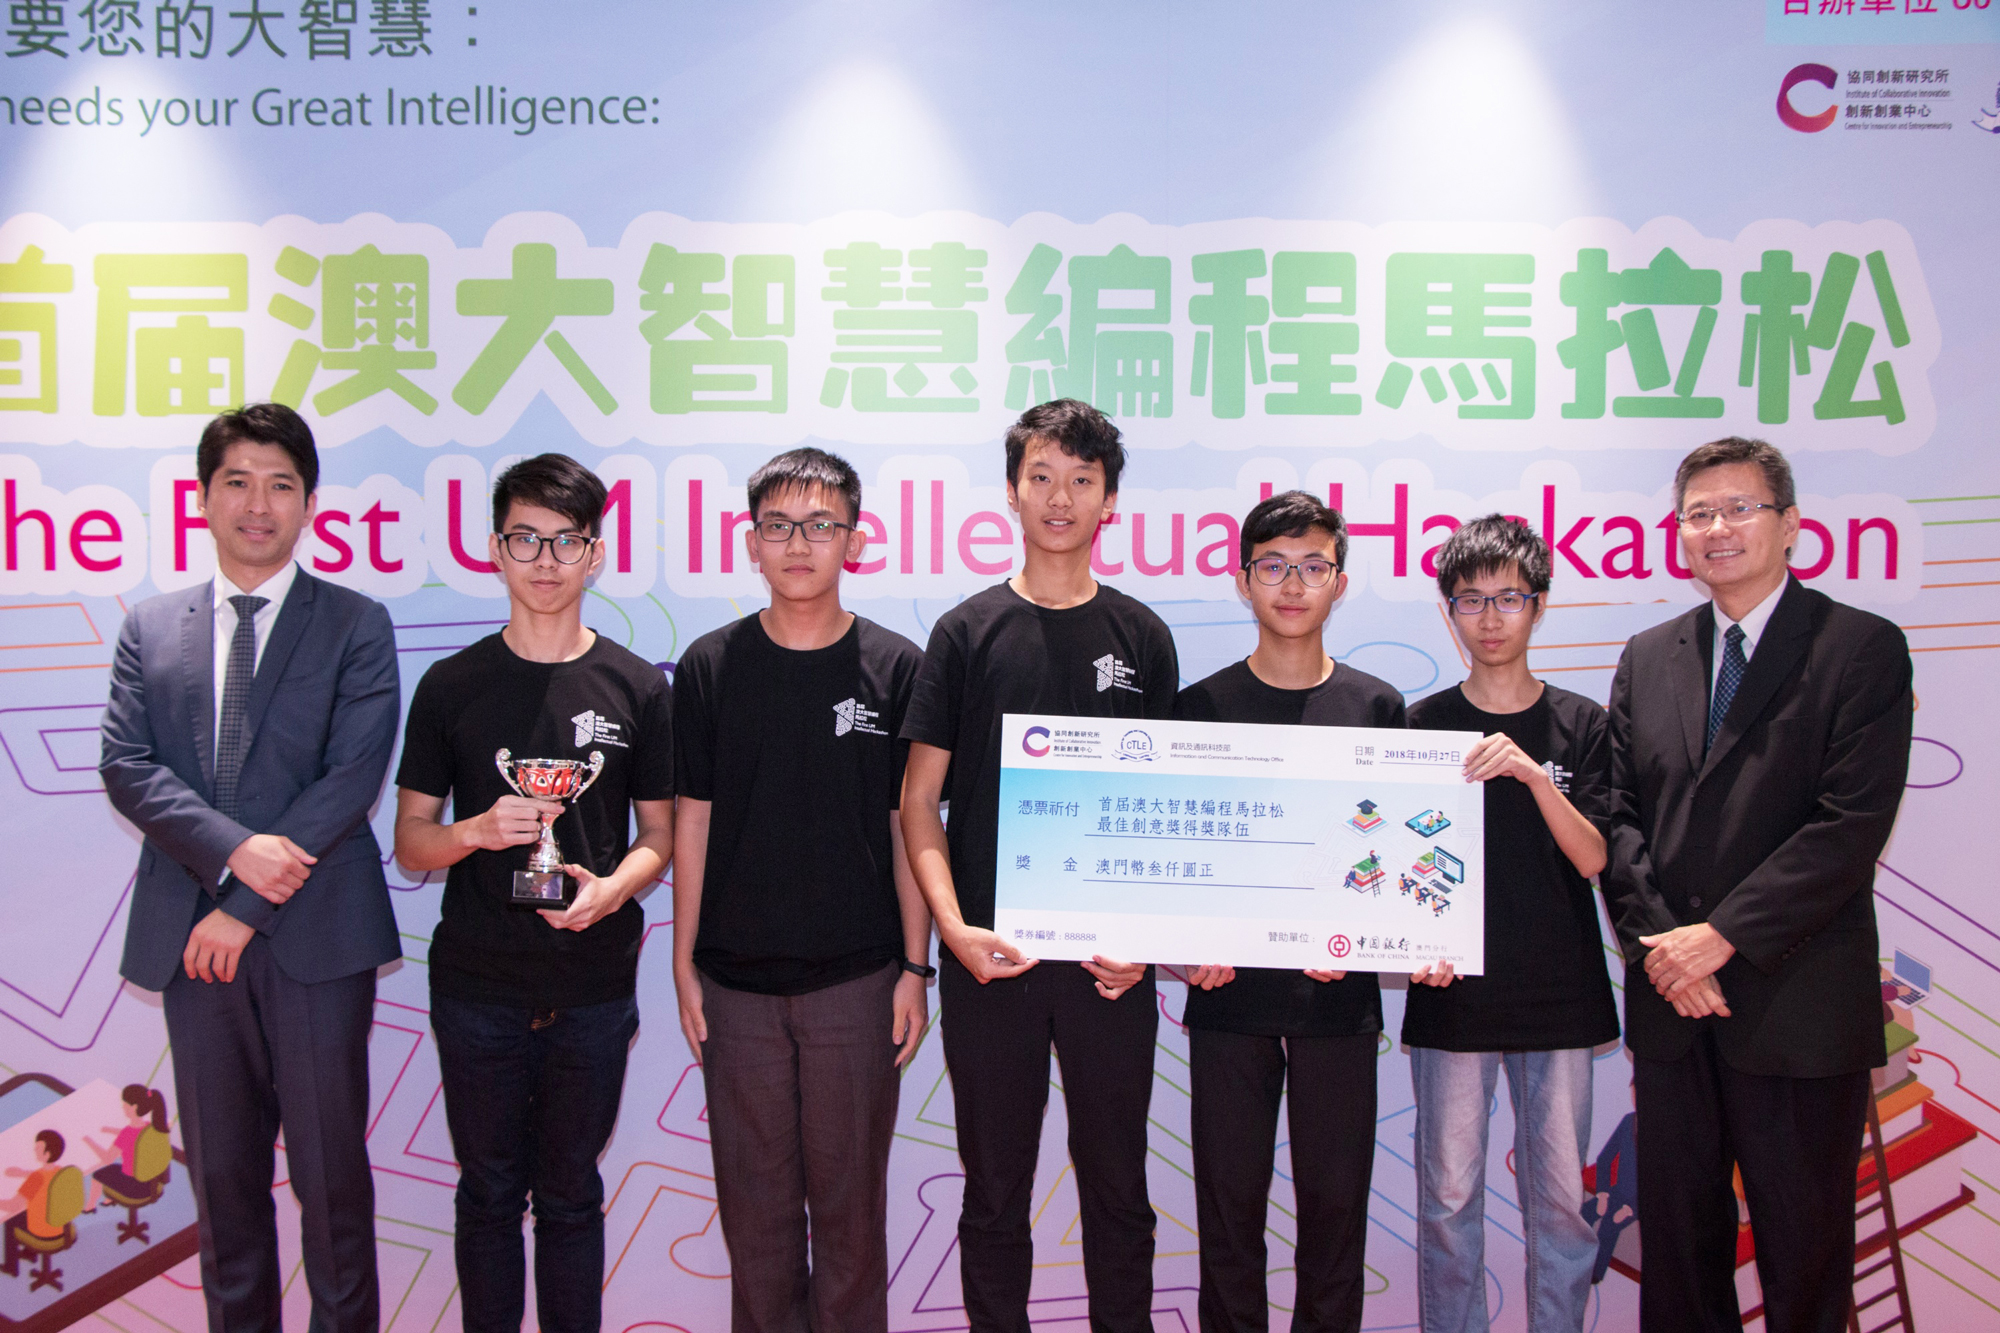 Team 'Pui Ching Normal Students' wins an Innovative Prize